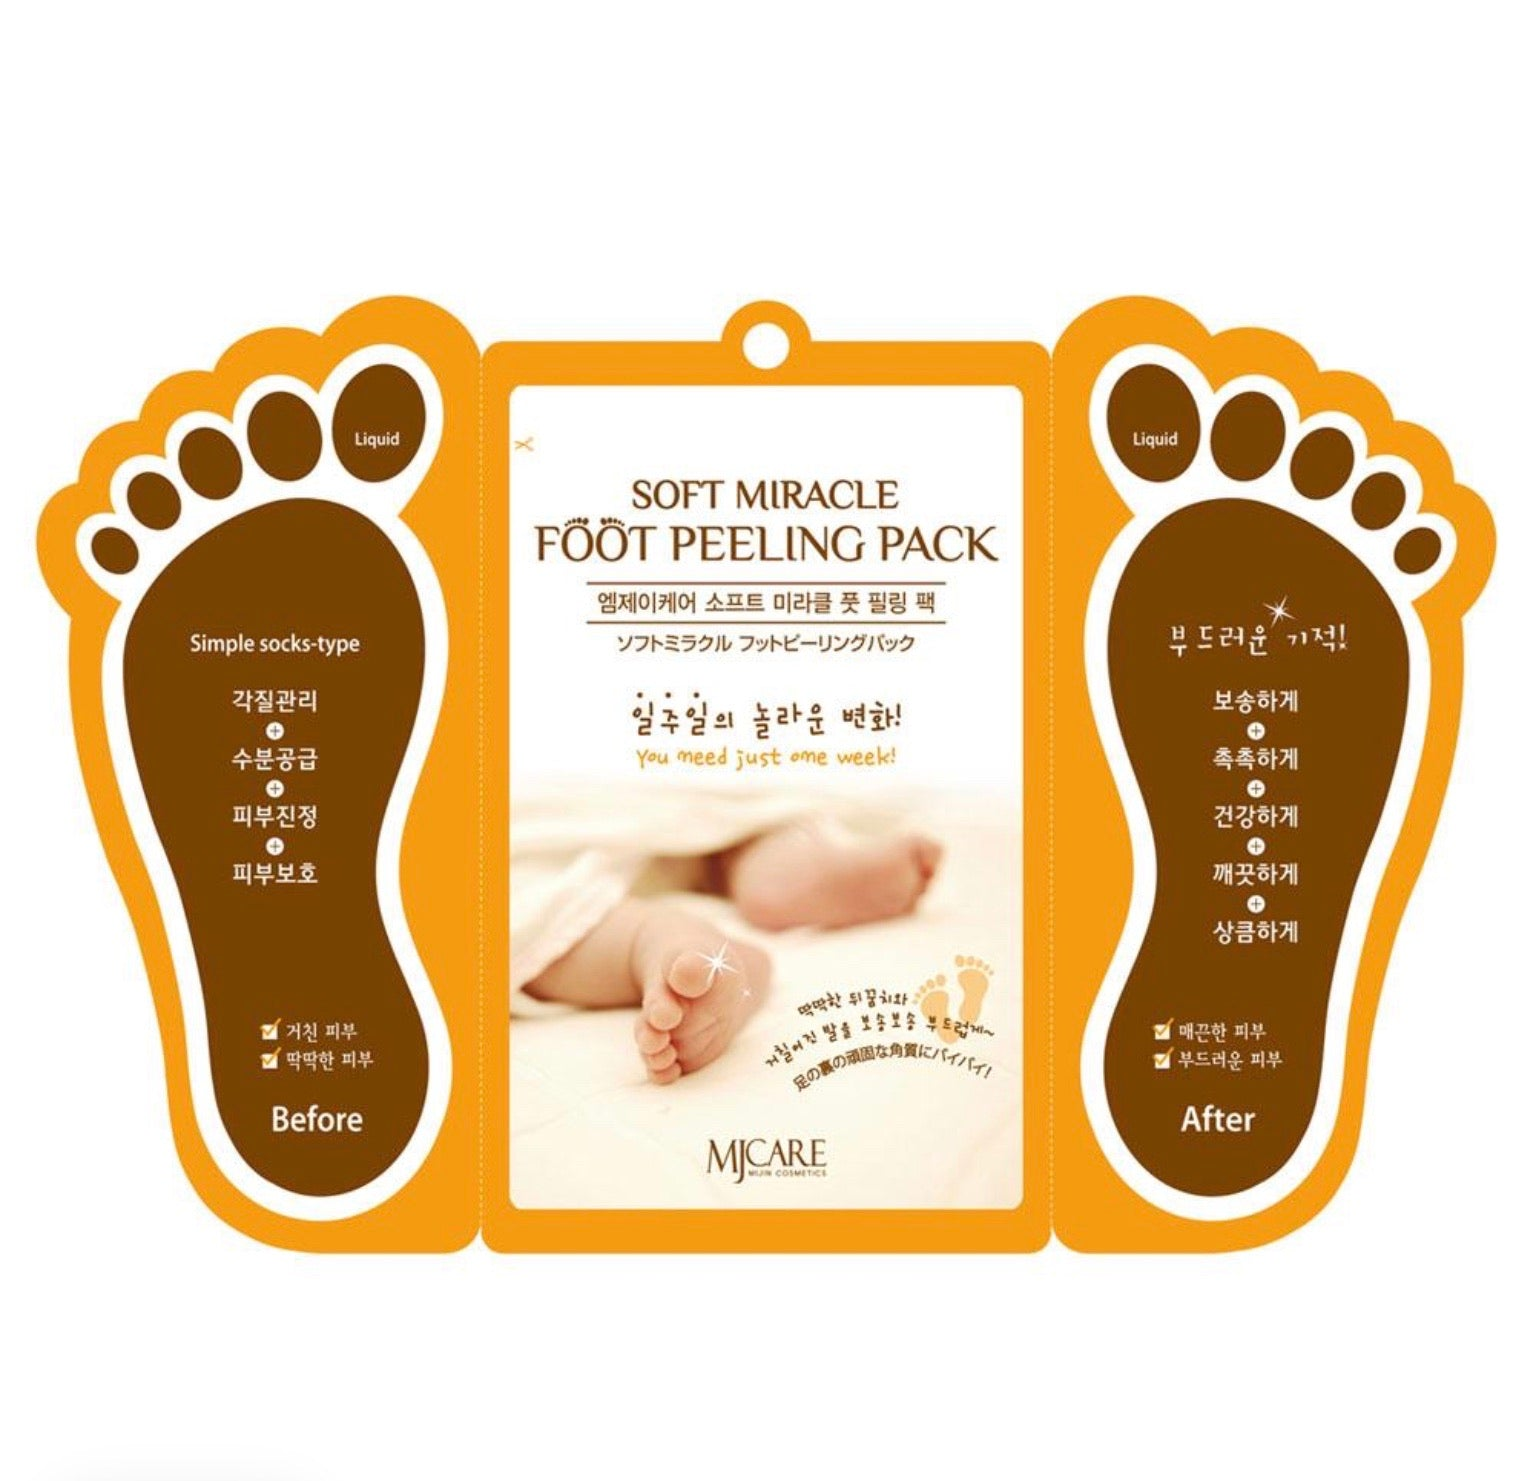 (MIJIN) PREMIUM SOFT MIRACLE FOOT PEELING PACK